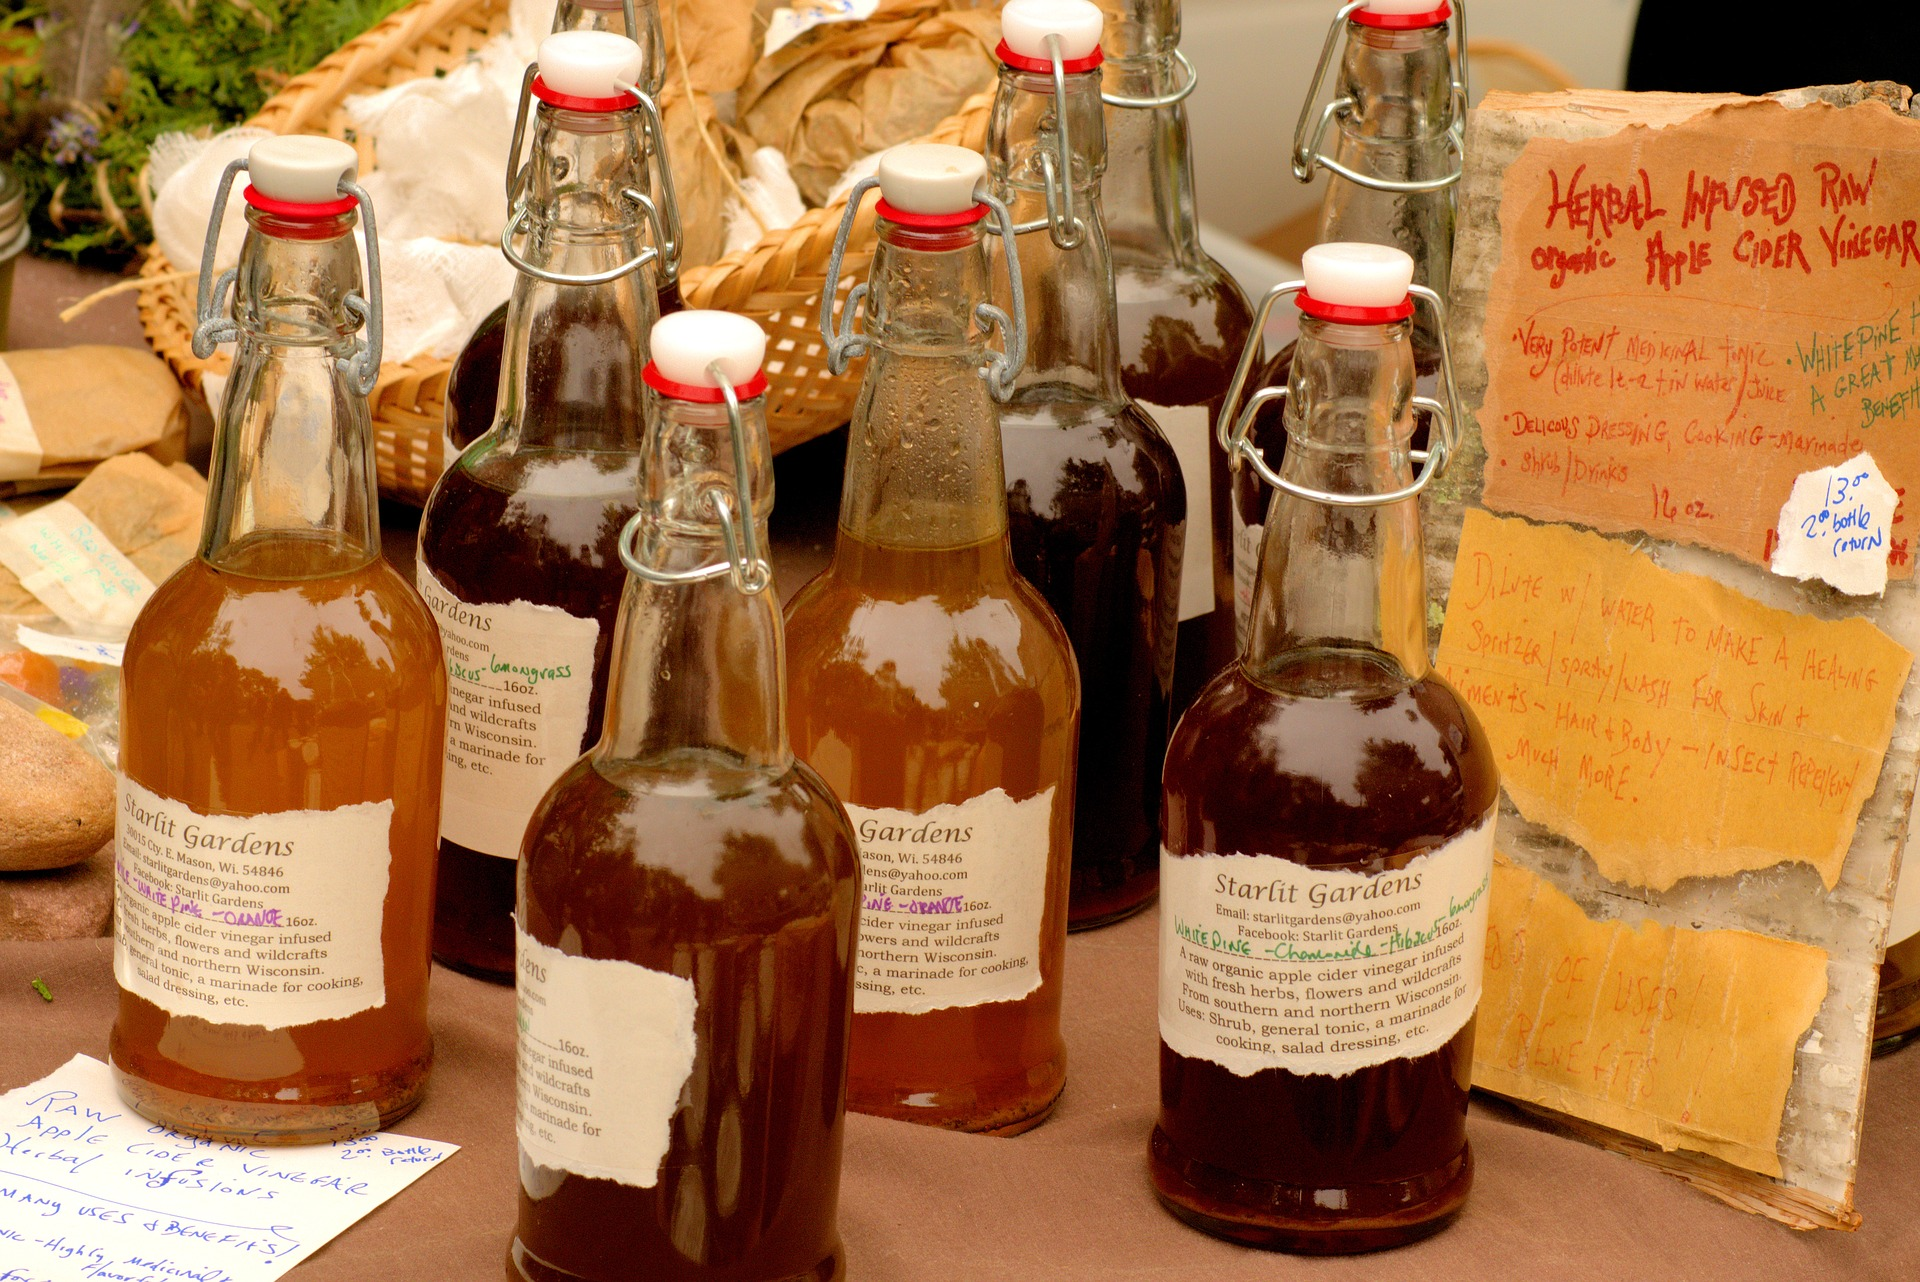 Does Apple Cider Vinegar Go Bad? Answers to Some Important Questions